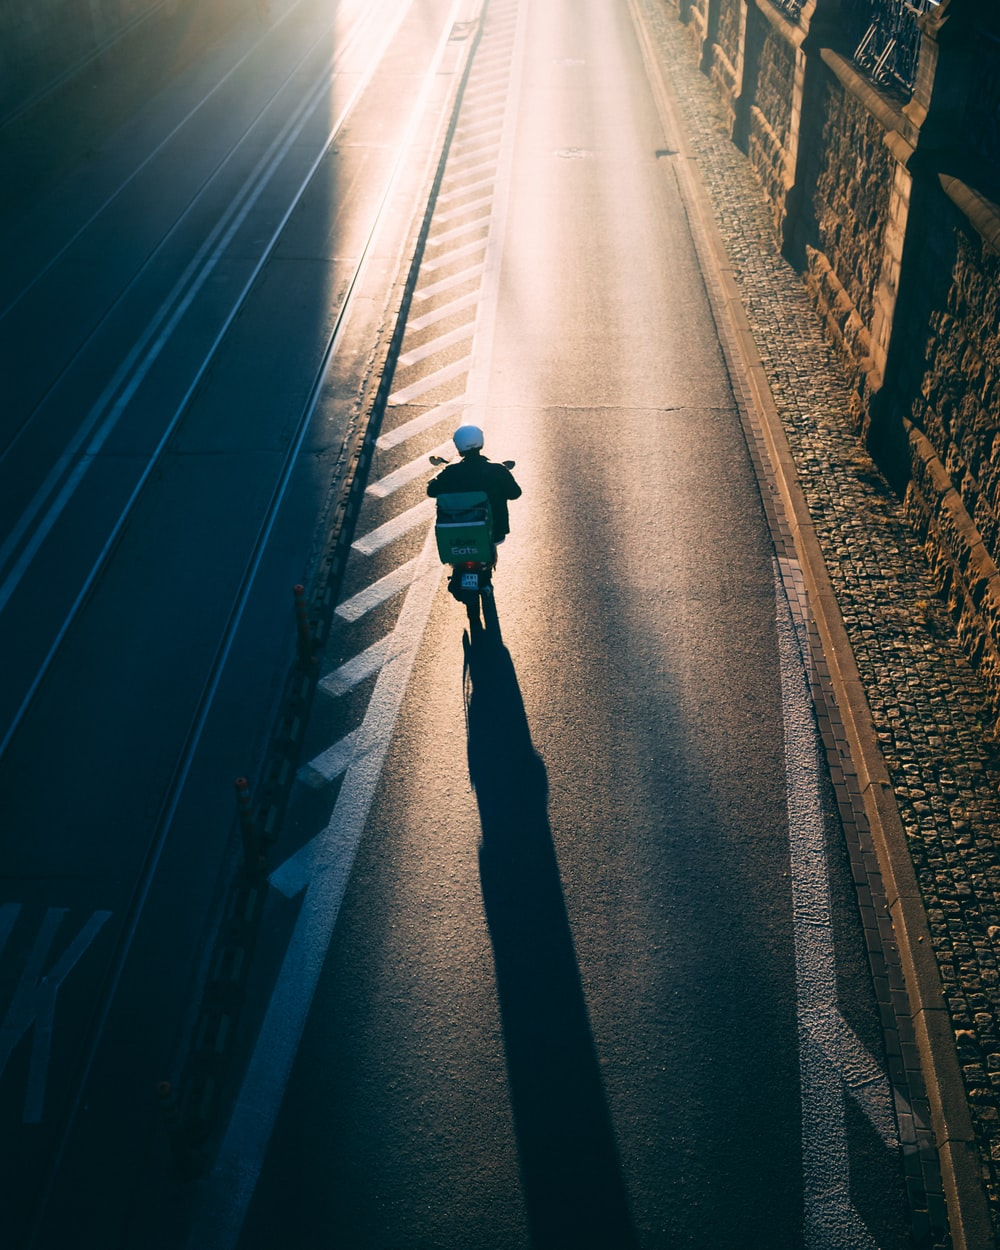 person in black jacket walking on train rail during night time